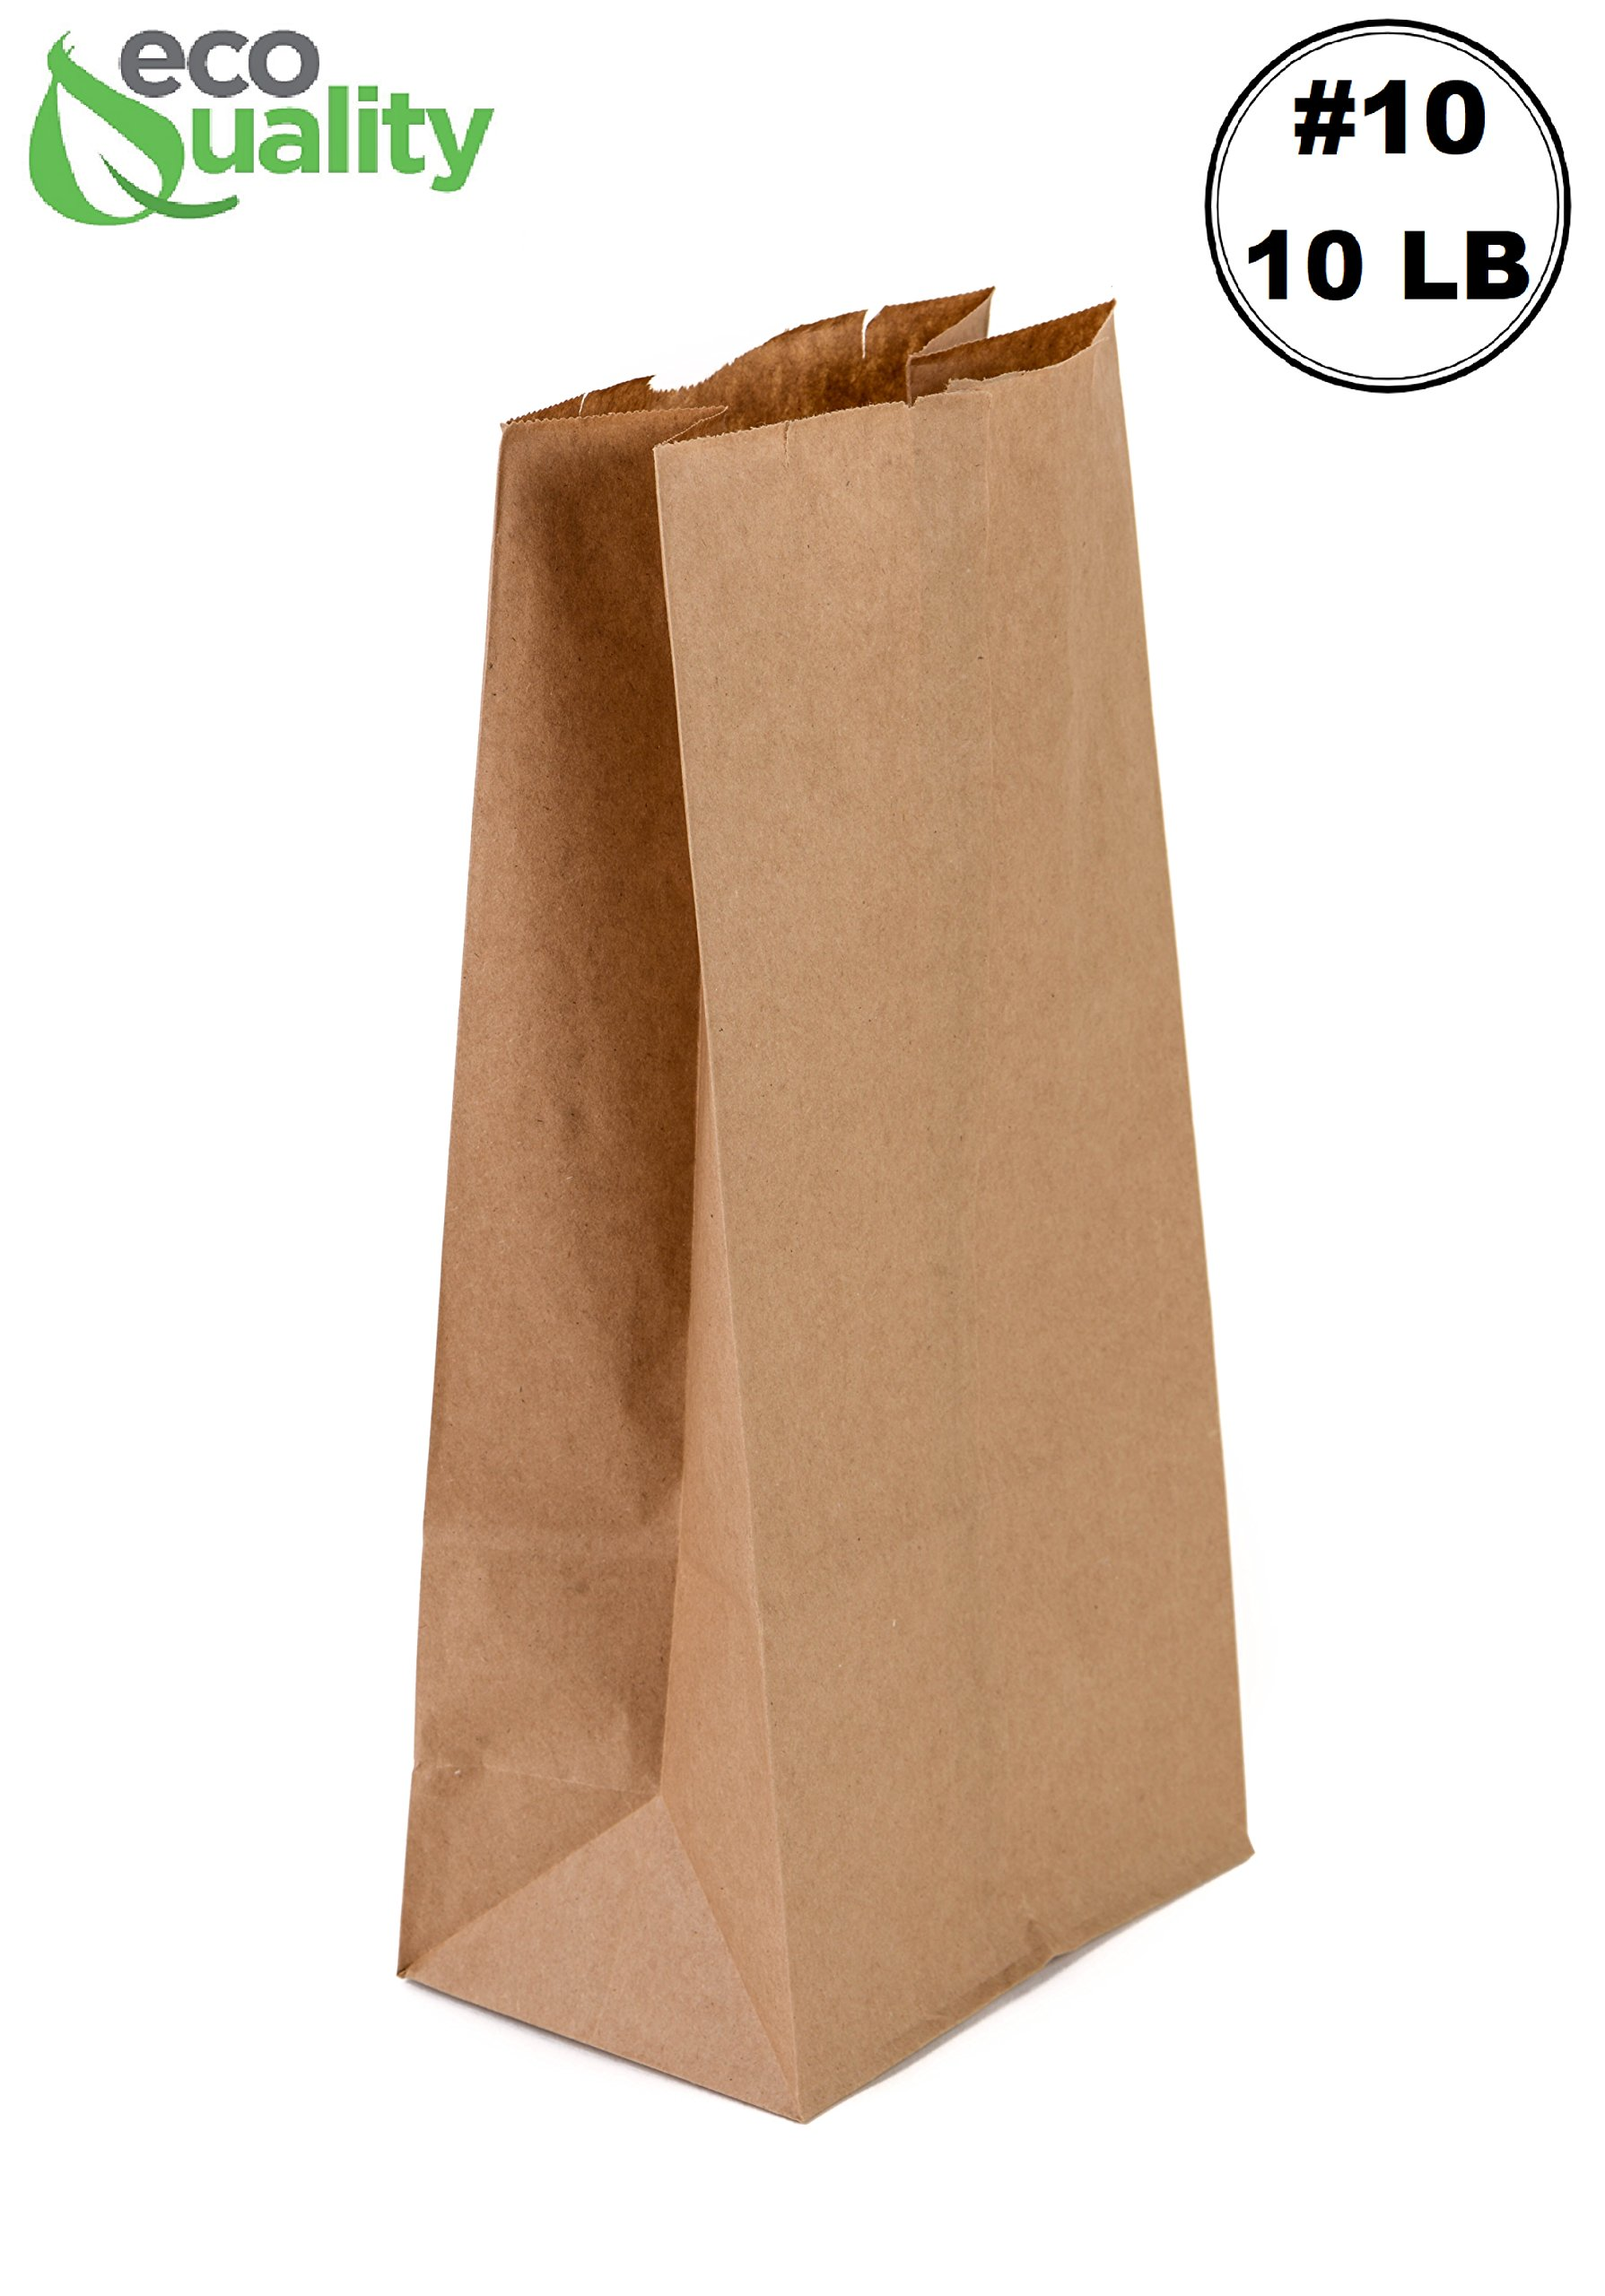 EcoQuality 500 Brown Kraft Paper Bag (10 lb) Medium - Paper Lunch Bags, Small Snacks, Gift Bags, Grocery, Merchandise, Party Bags (6-5/16 x 4-3/16 x 13-3/8) (10 Pound Capacity)